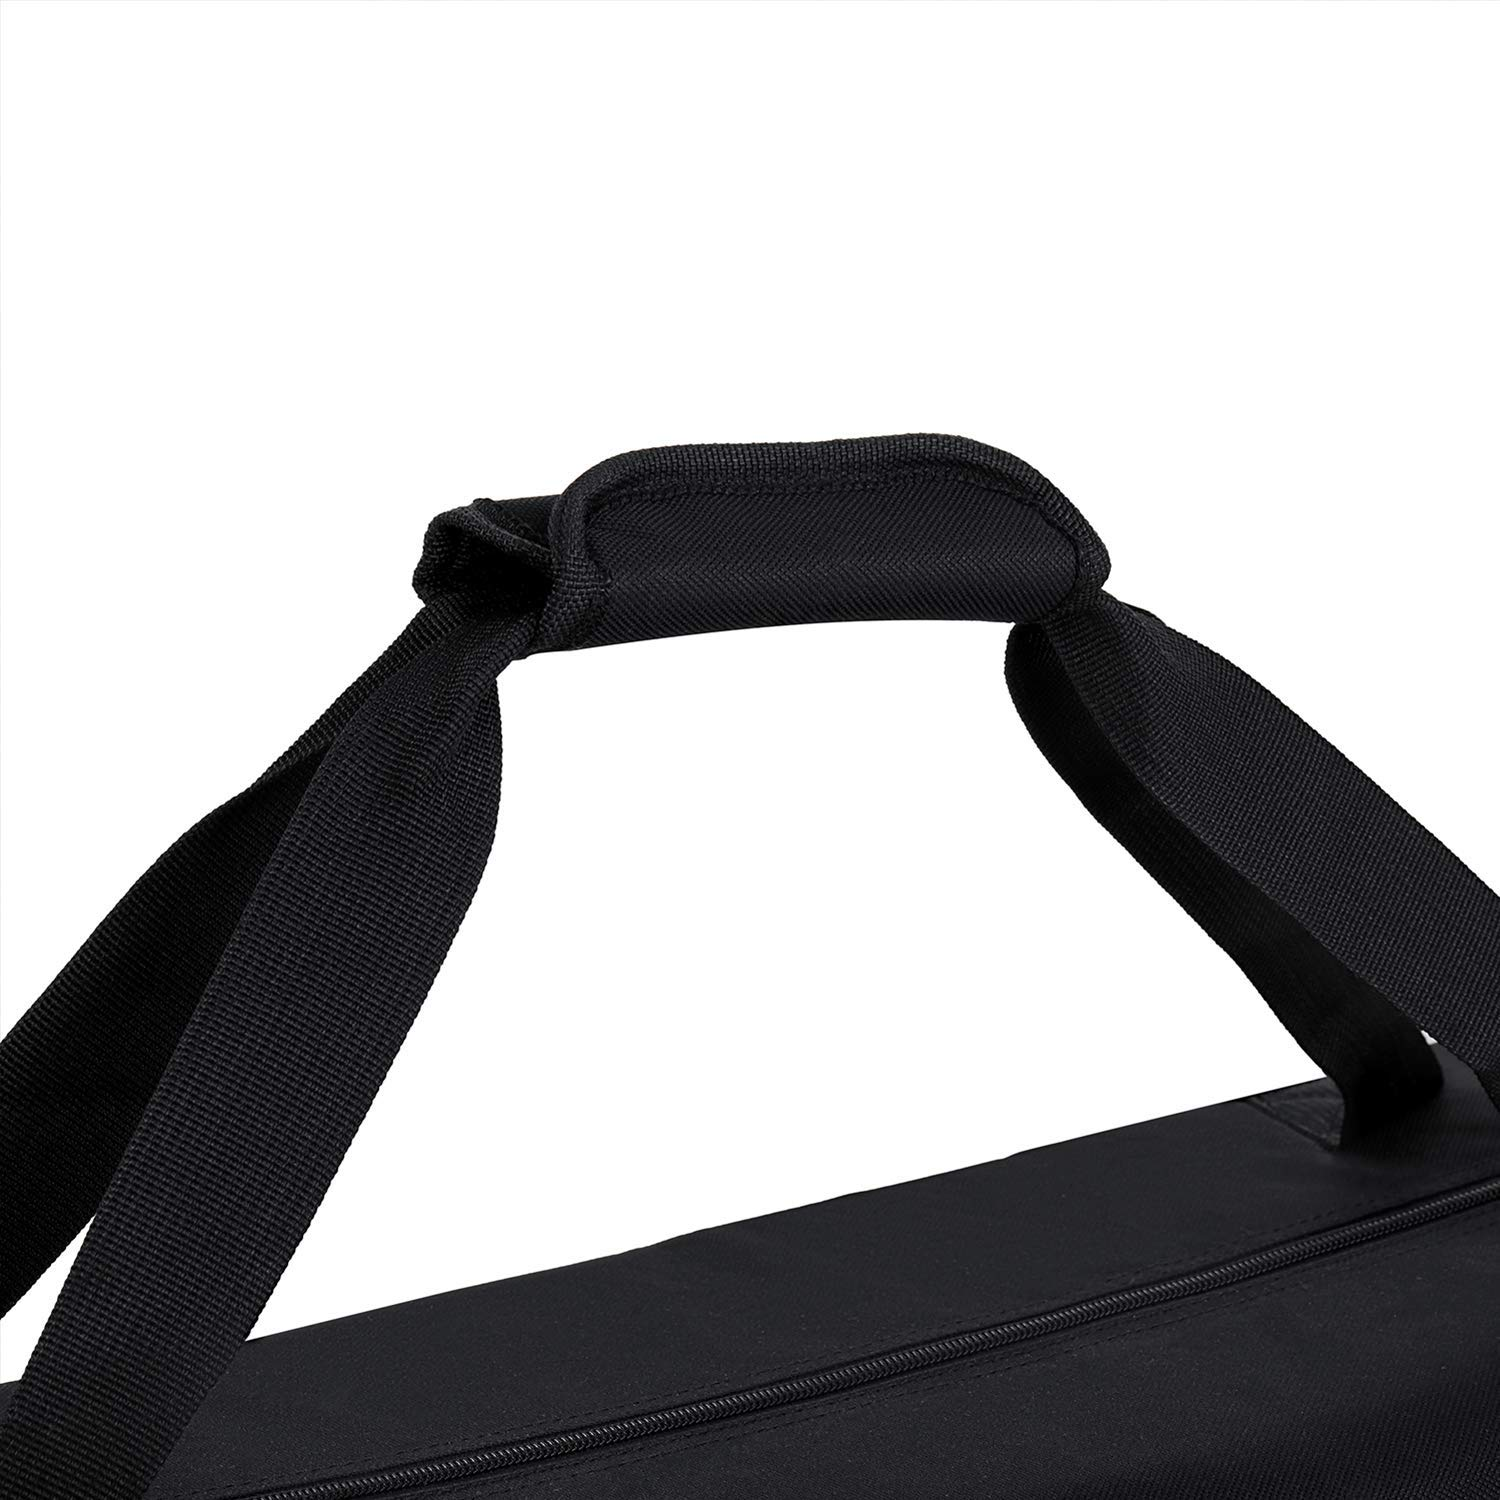 Store /& Transport Skis and Poles up to 175cm//185CM Fully Padded Black GRM Ski Travel Bag Water Resistant